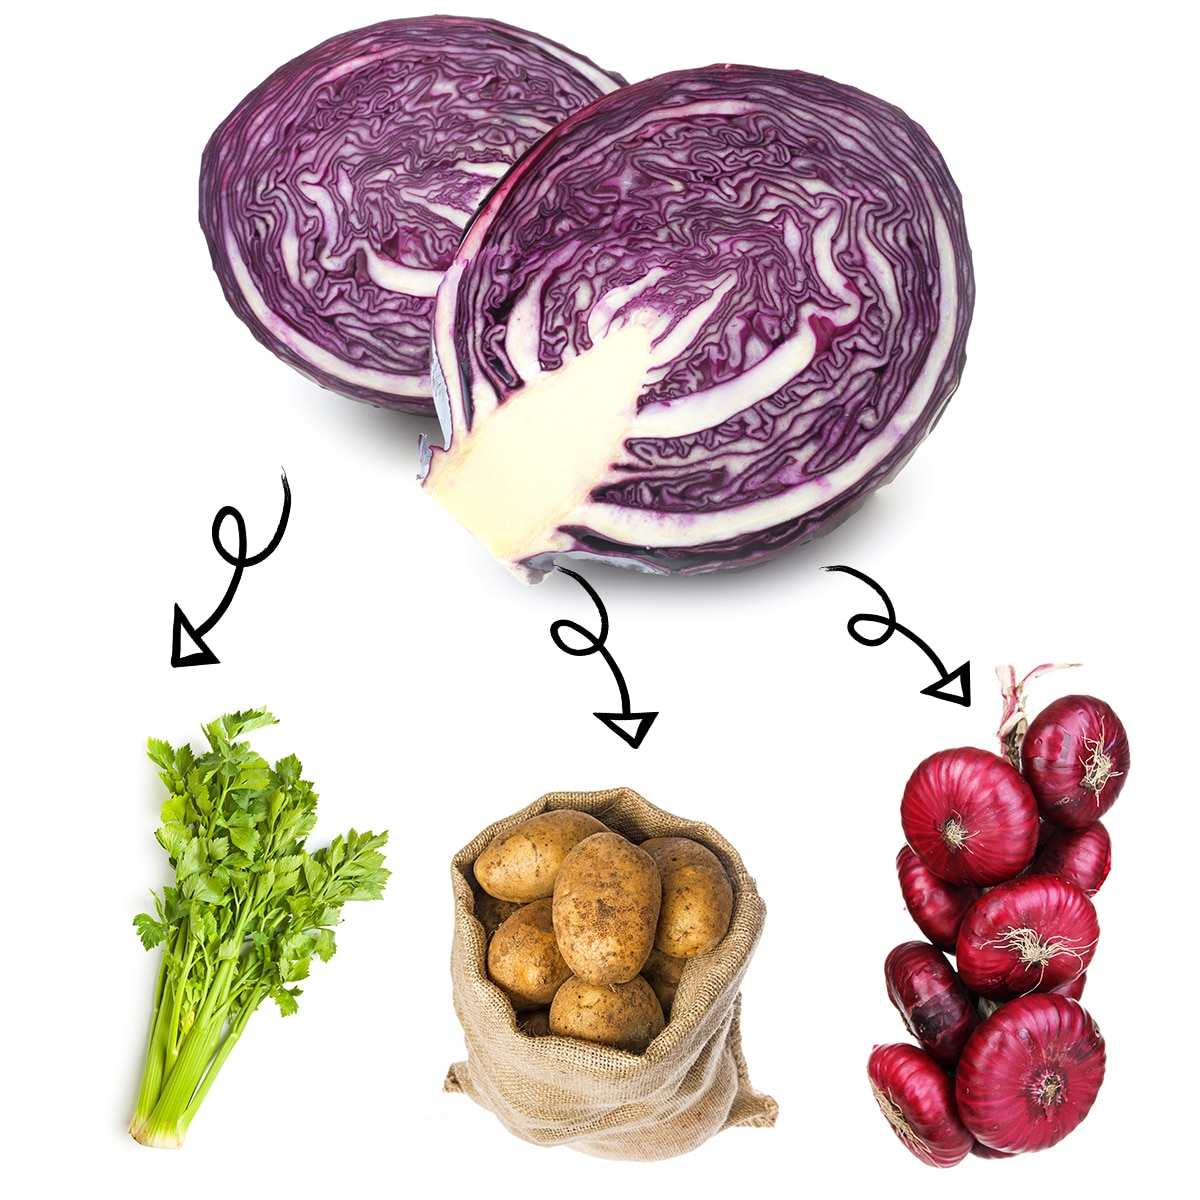 Bright white graphic of a sliced head of red cabbage with arrows linking it to a bundle of celery stalks, a sack of russet potatoes, and a bundle of red onions.